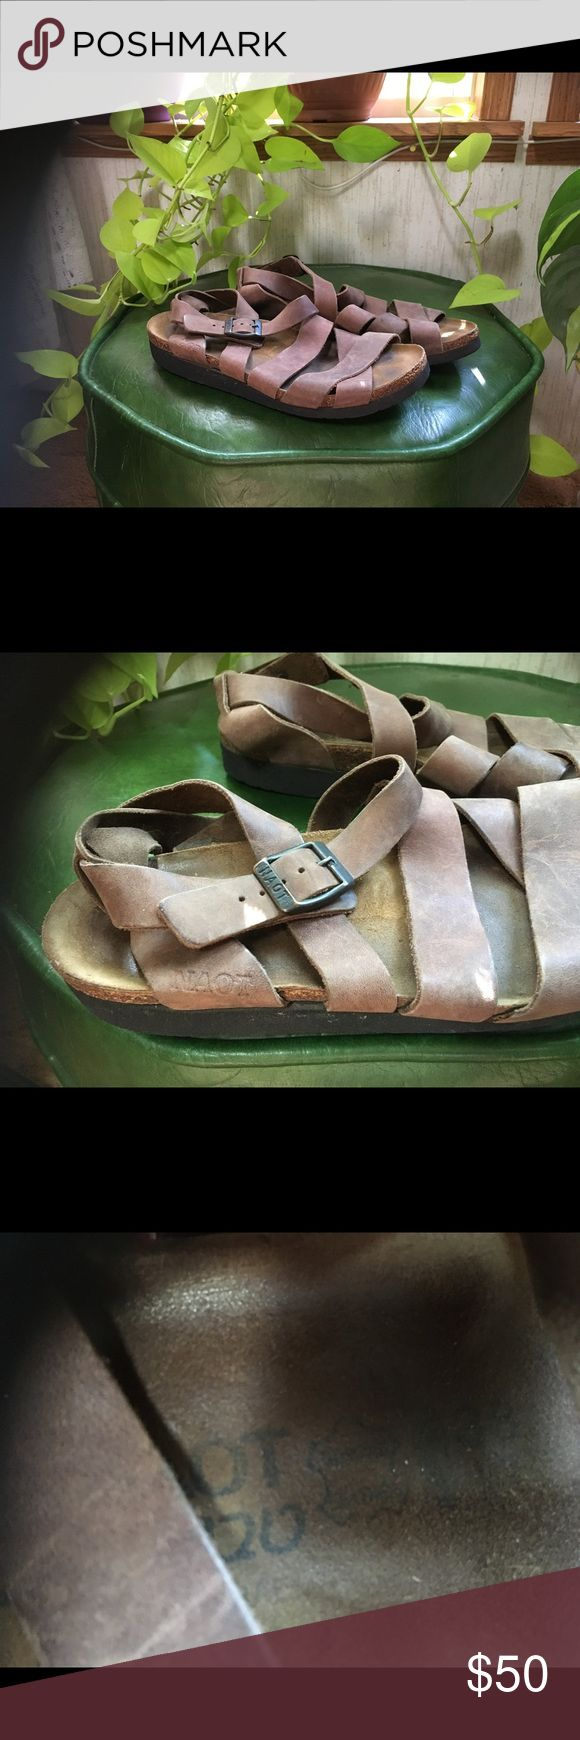 NAOT brown sandals So comfy, fit very similar to Birkenstocks! Cork footbed with a solid arch. I have wide feet with a rogue pinky toe and they're too slim for me. Worn a few times, no damage! Perfect 7.5 Naot Shoes Sandals